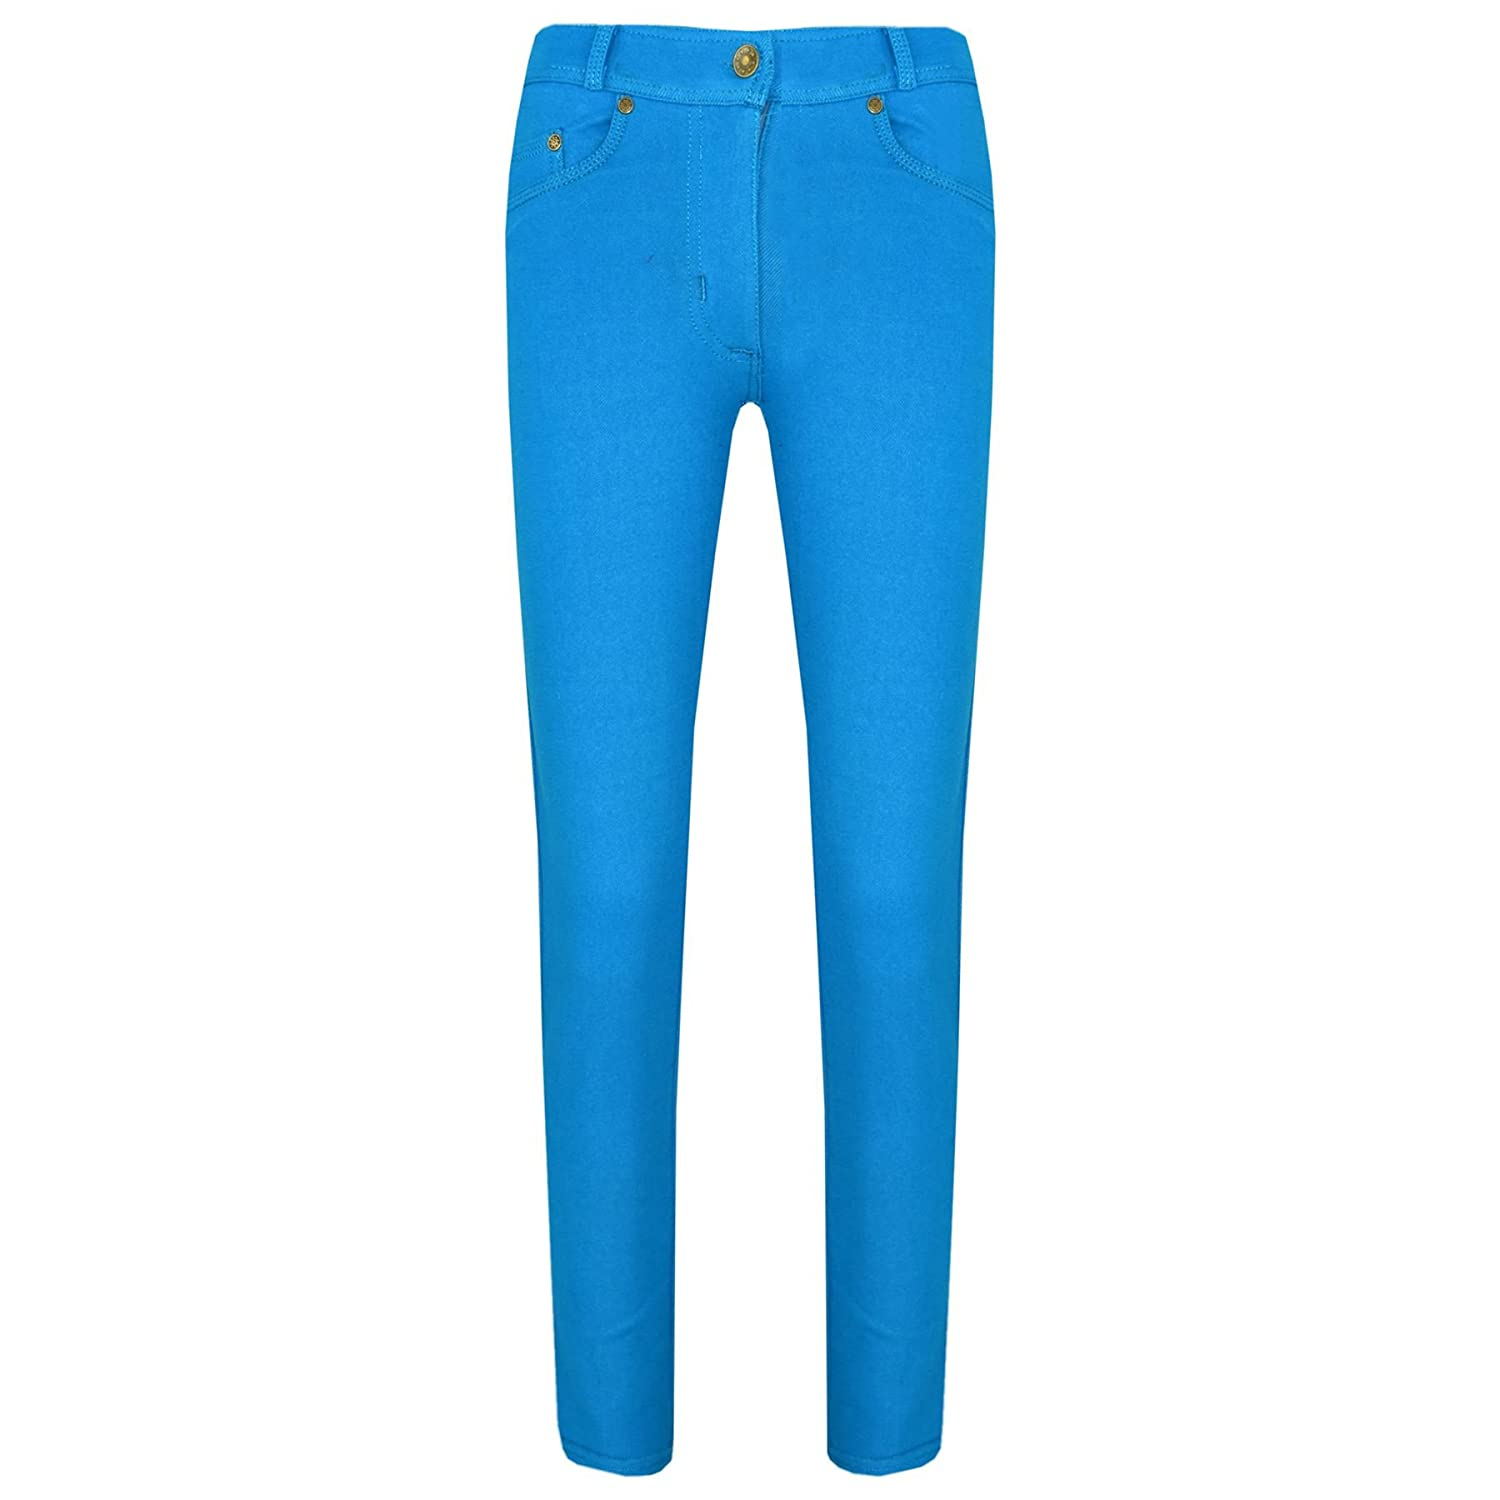 A2Z 4 Kids® Girls Skinny Jeans Kids Stretchy Jeggings Denim Fit Pants Fashion Coloured Trousers Age 5 6 7 8 9 10 11 12 13 Years